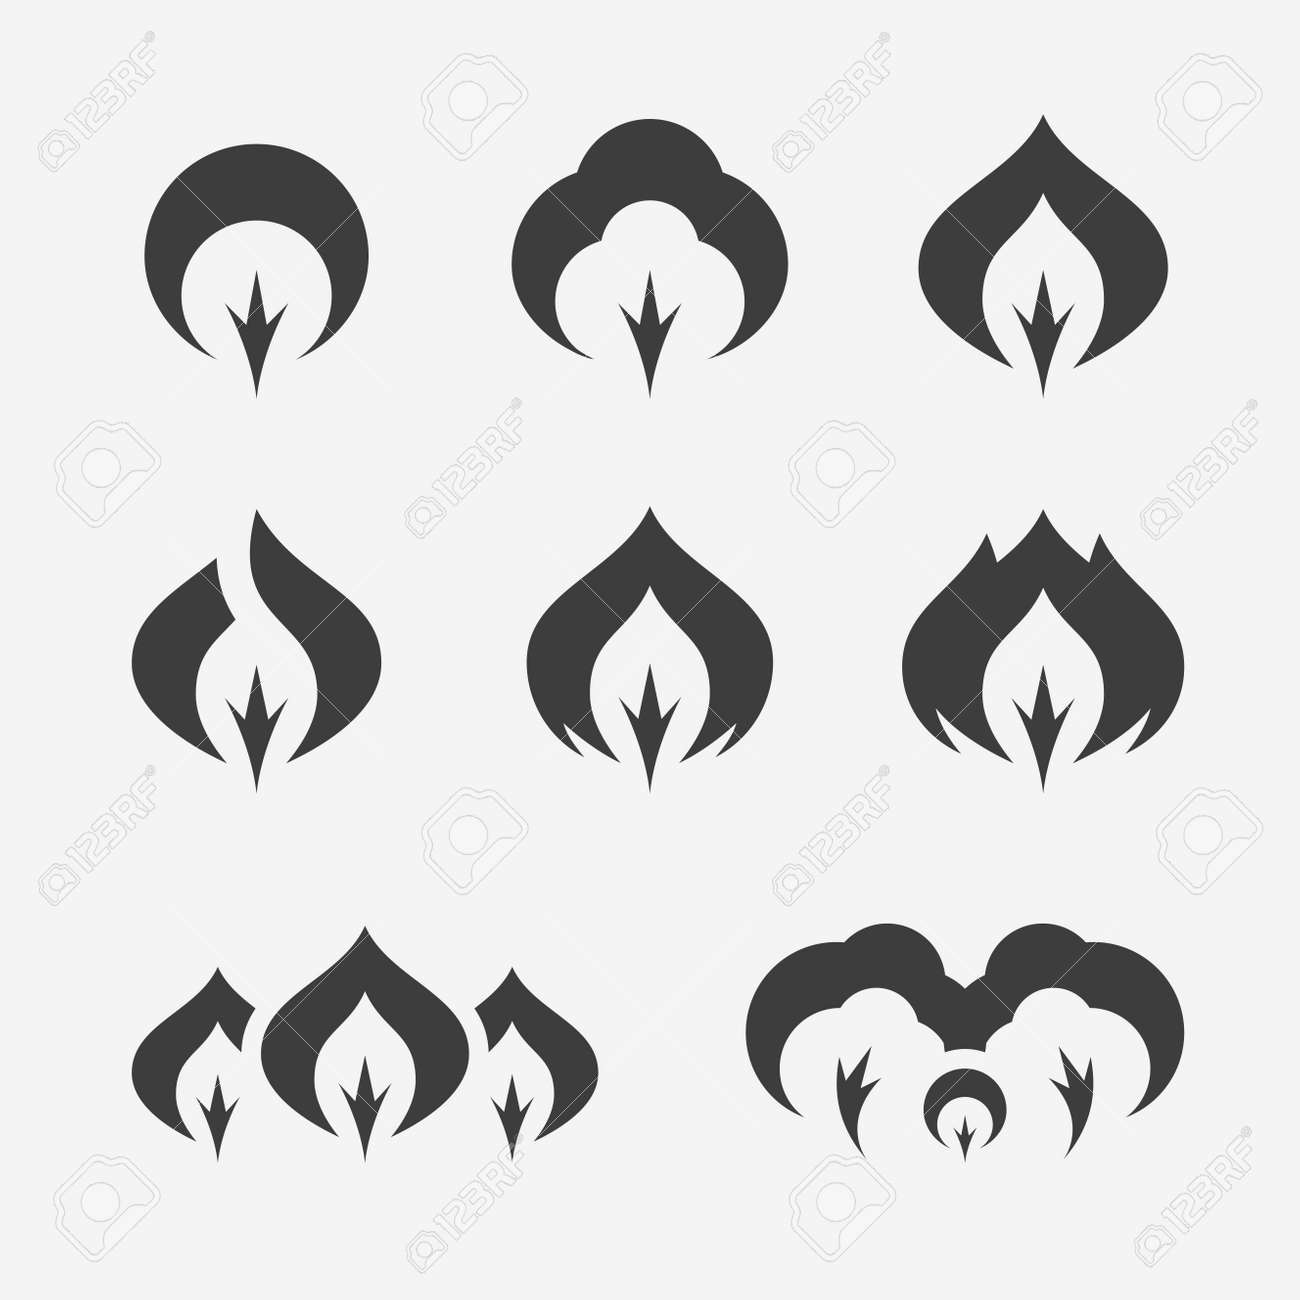 trees and forest simple vector logo set royalty free cliparts